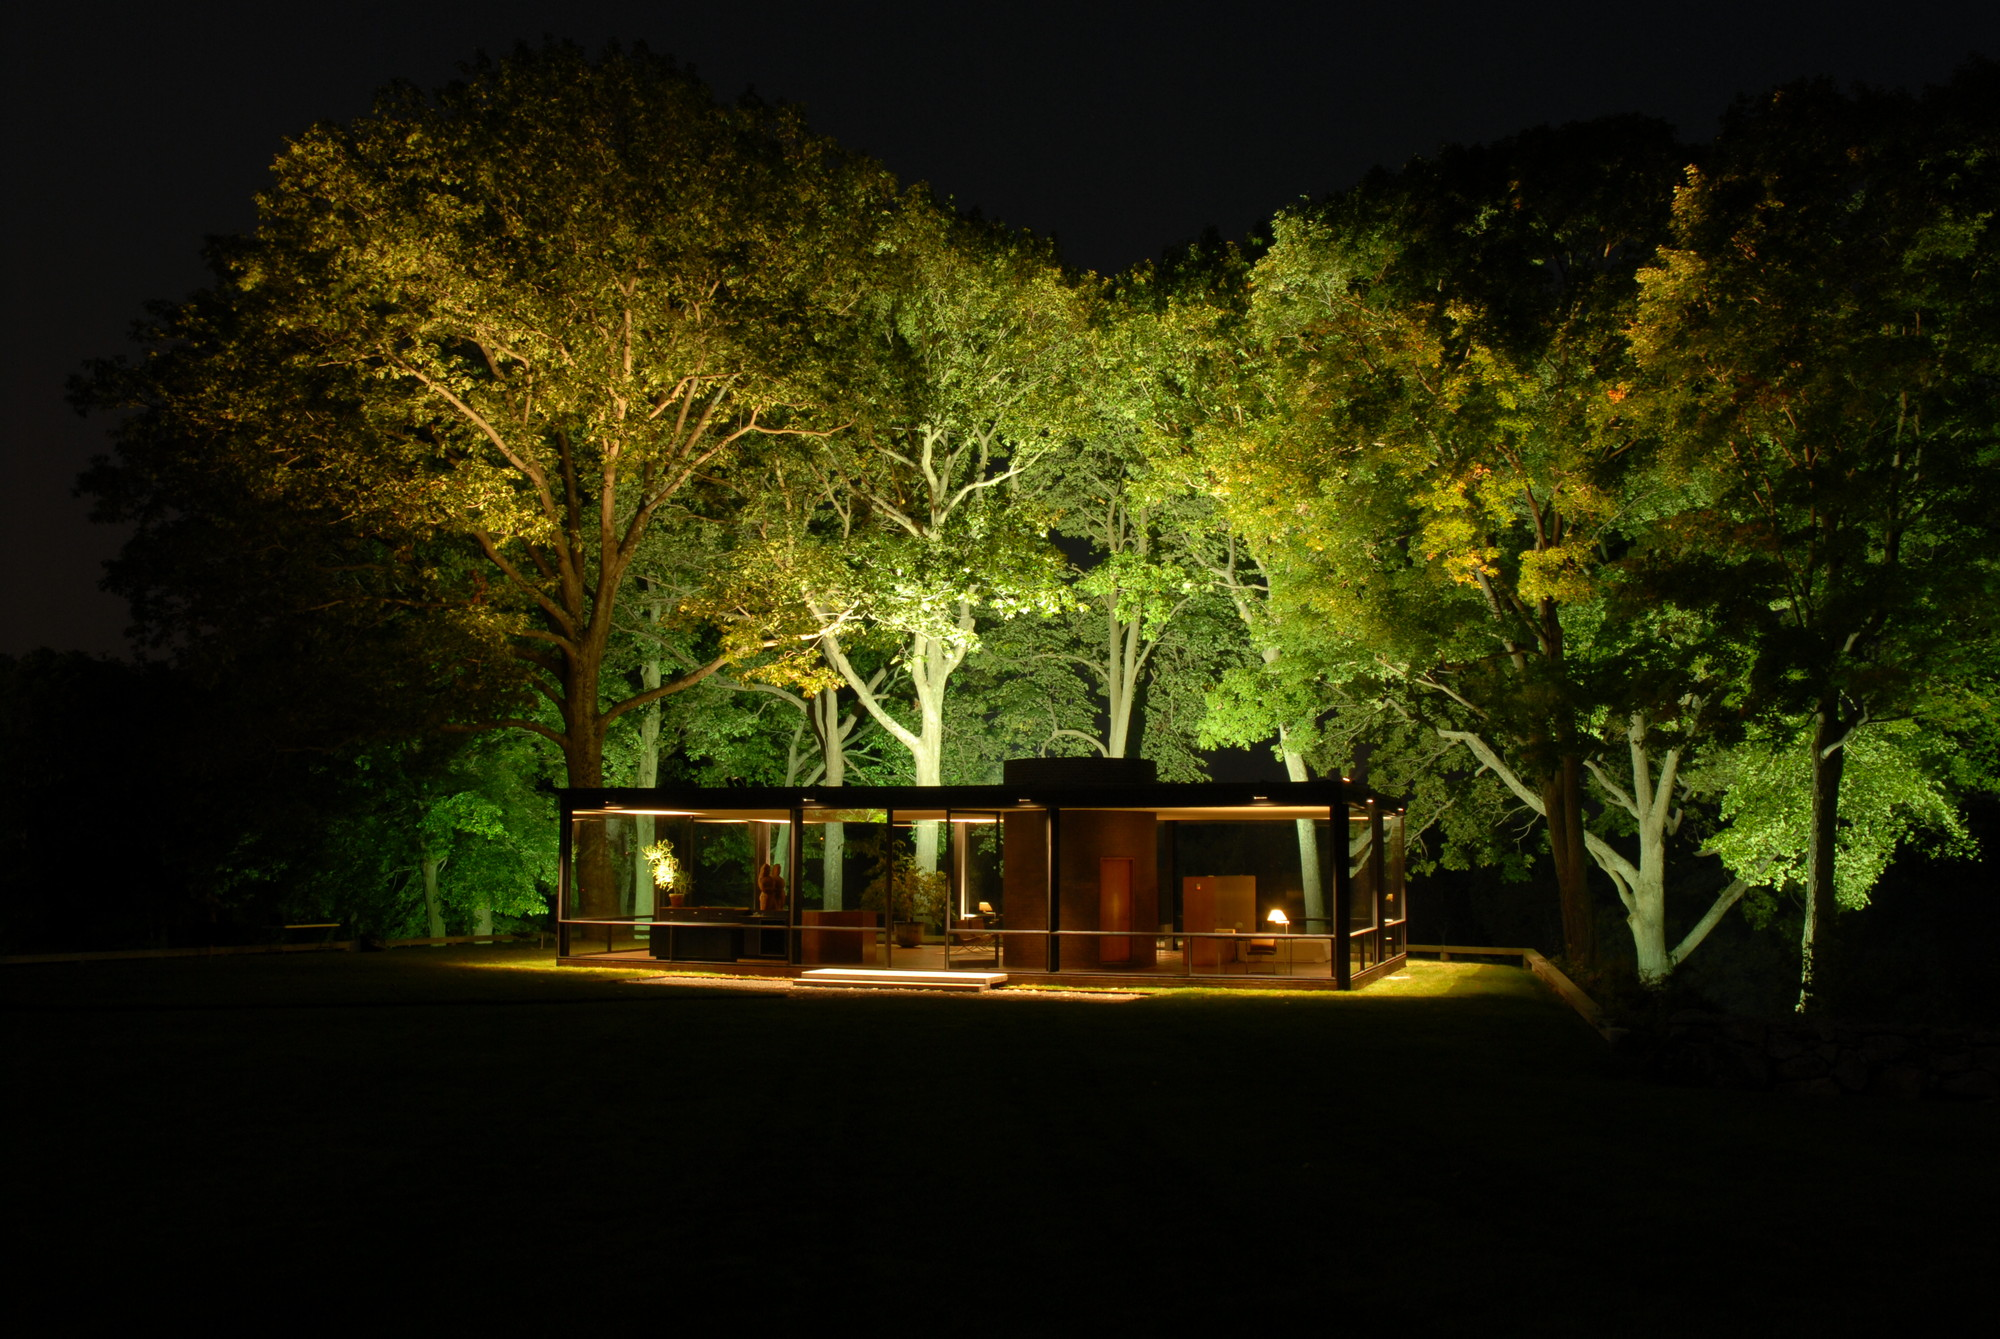 new house lighting. Glass House At Night By Steve Brosnahan Architect Philip Johnson Lighting Design New